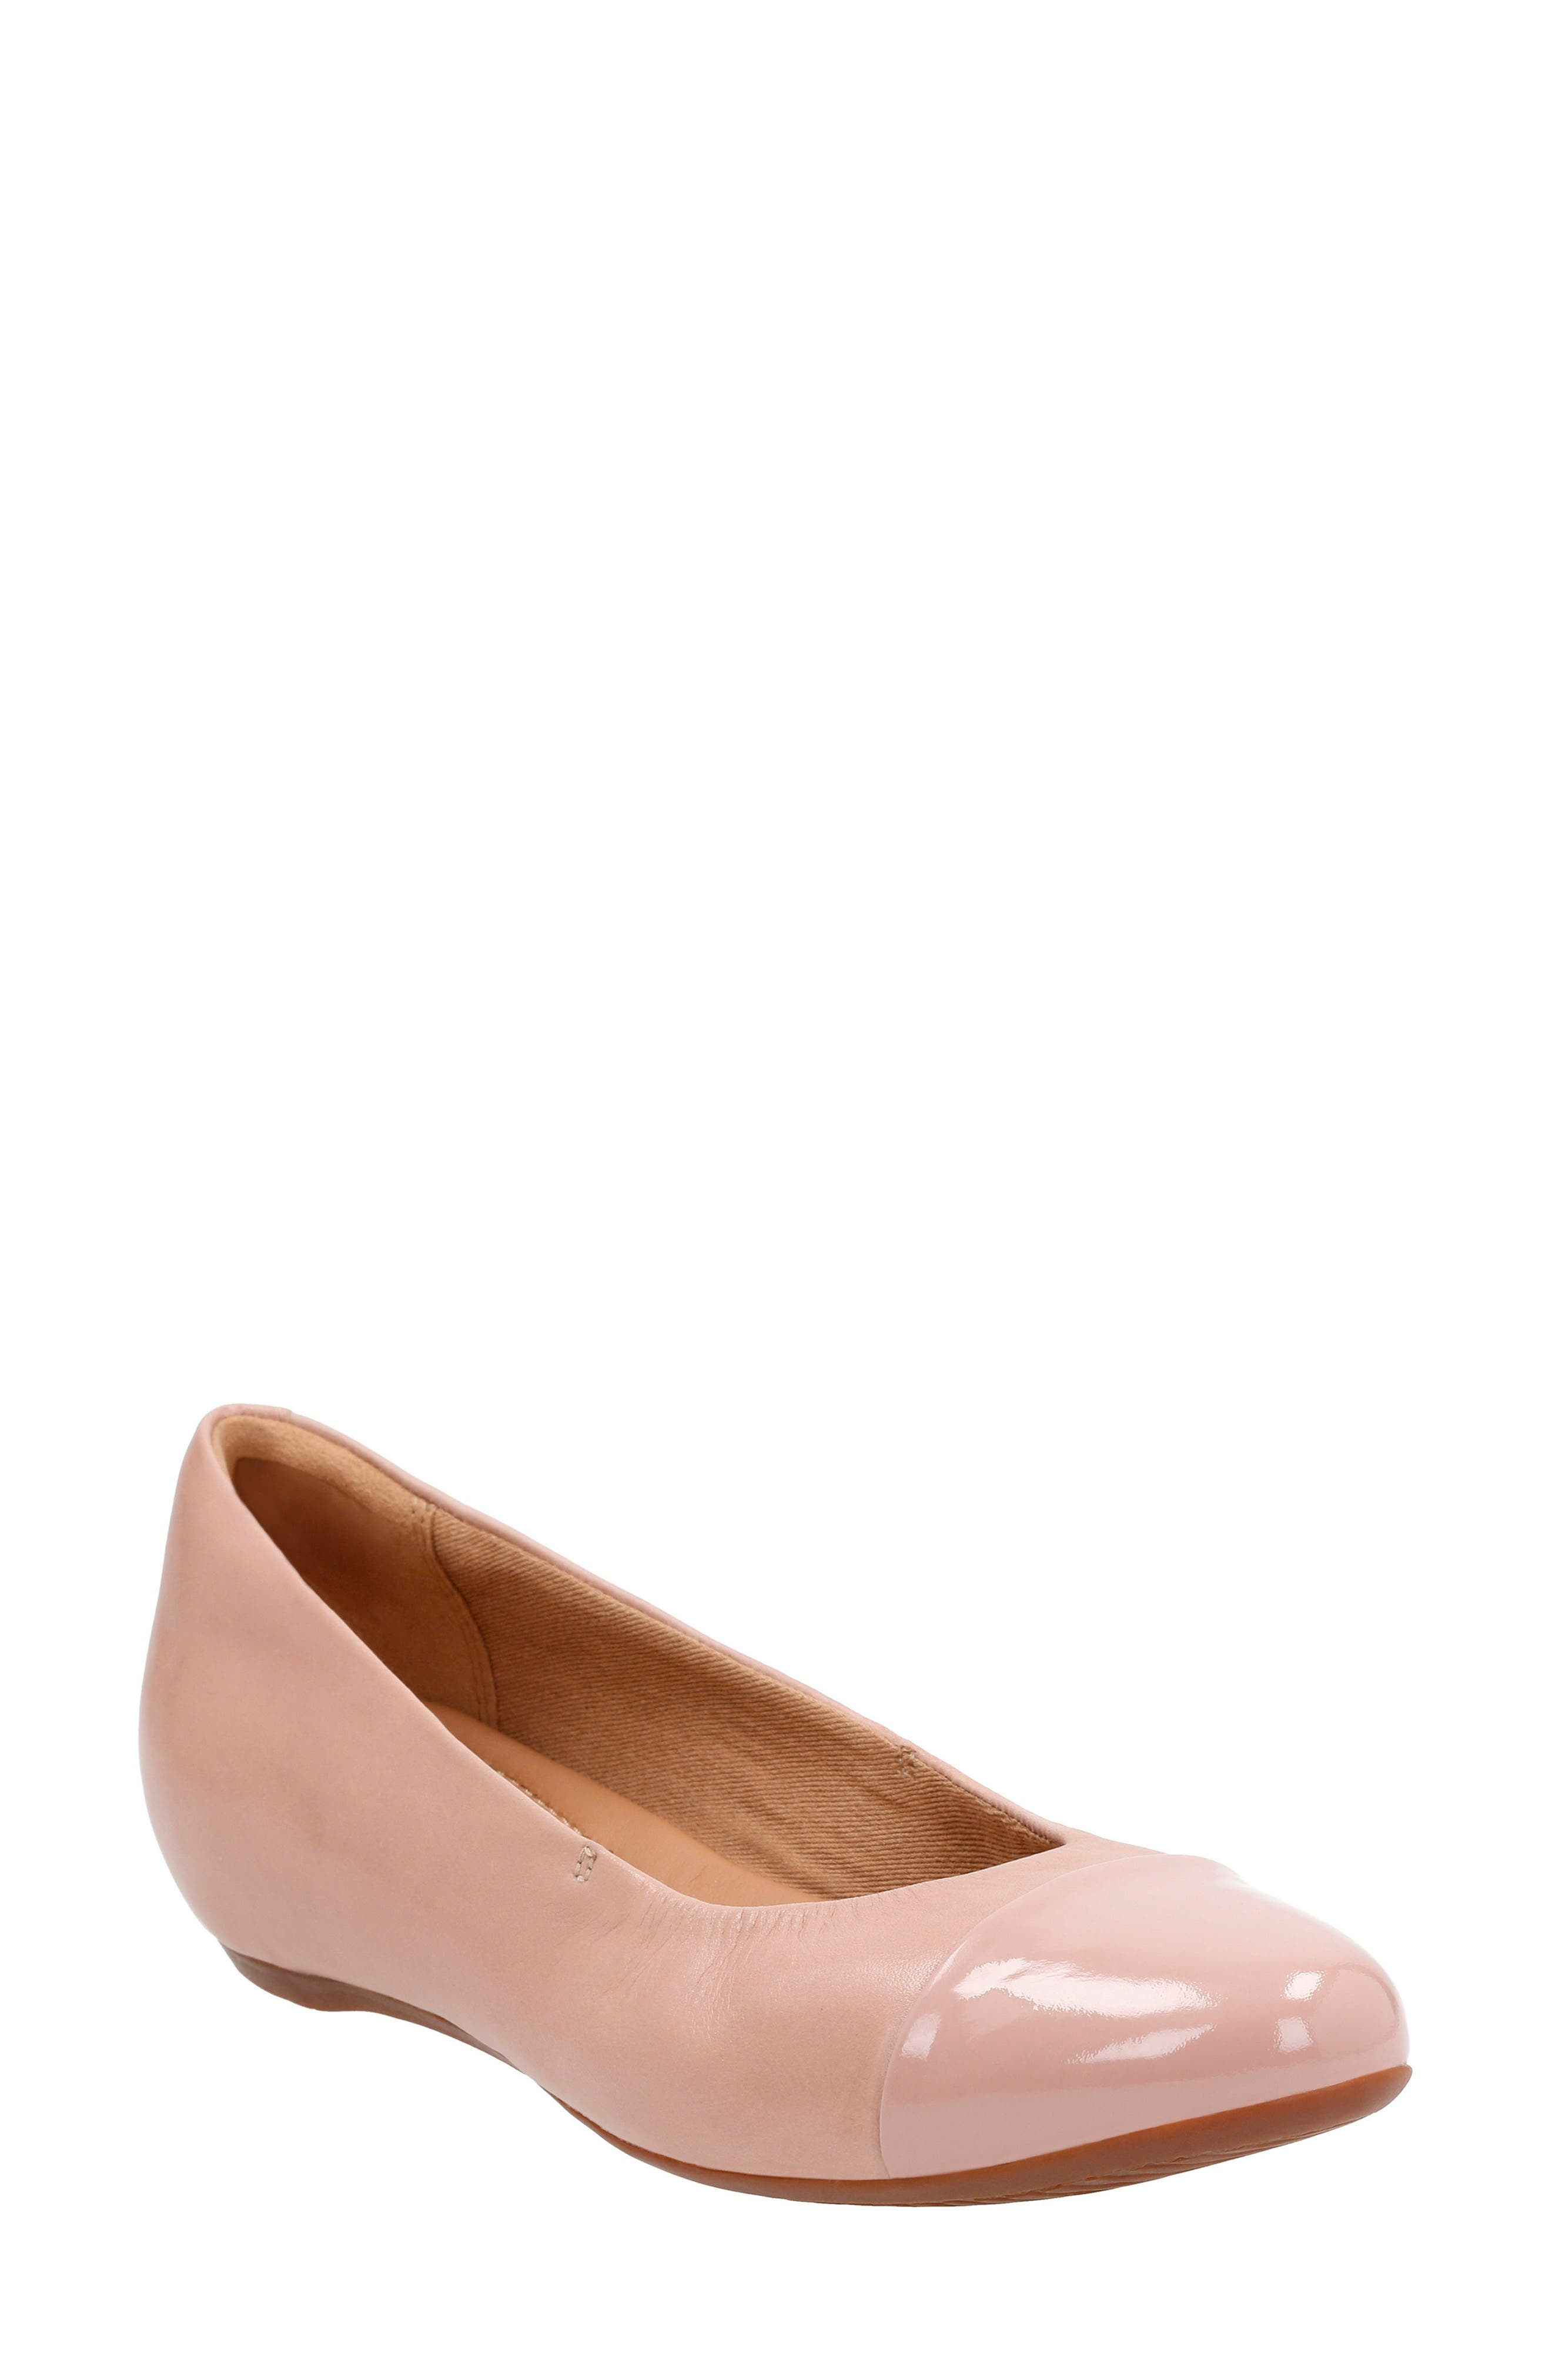 'Alitay Susan' Cap Toe Flat,                         Main,                         color, Dusty Pink Leather